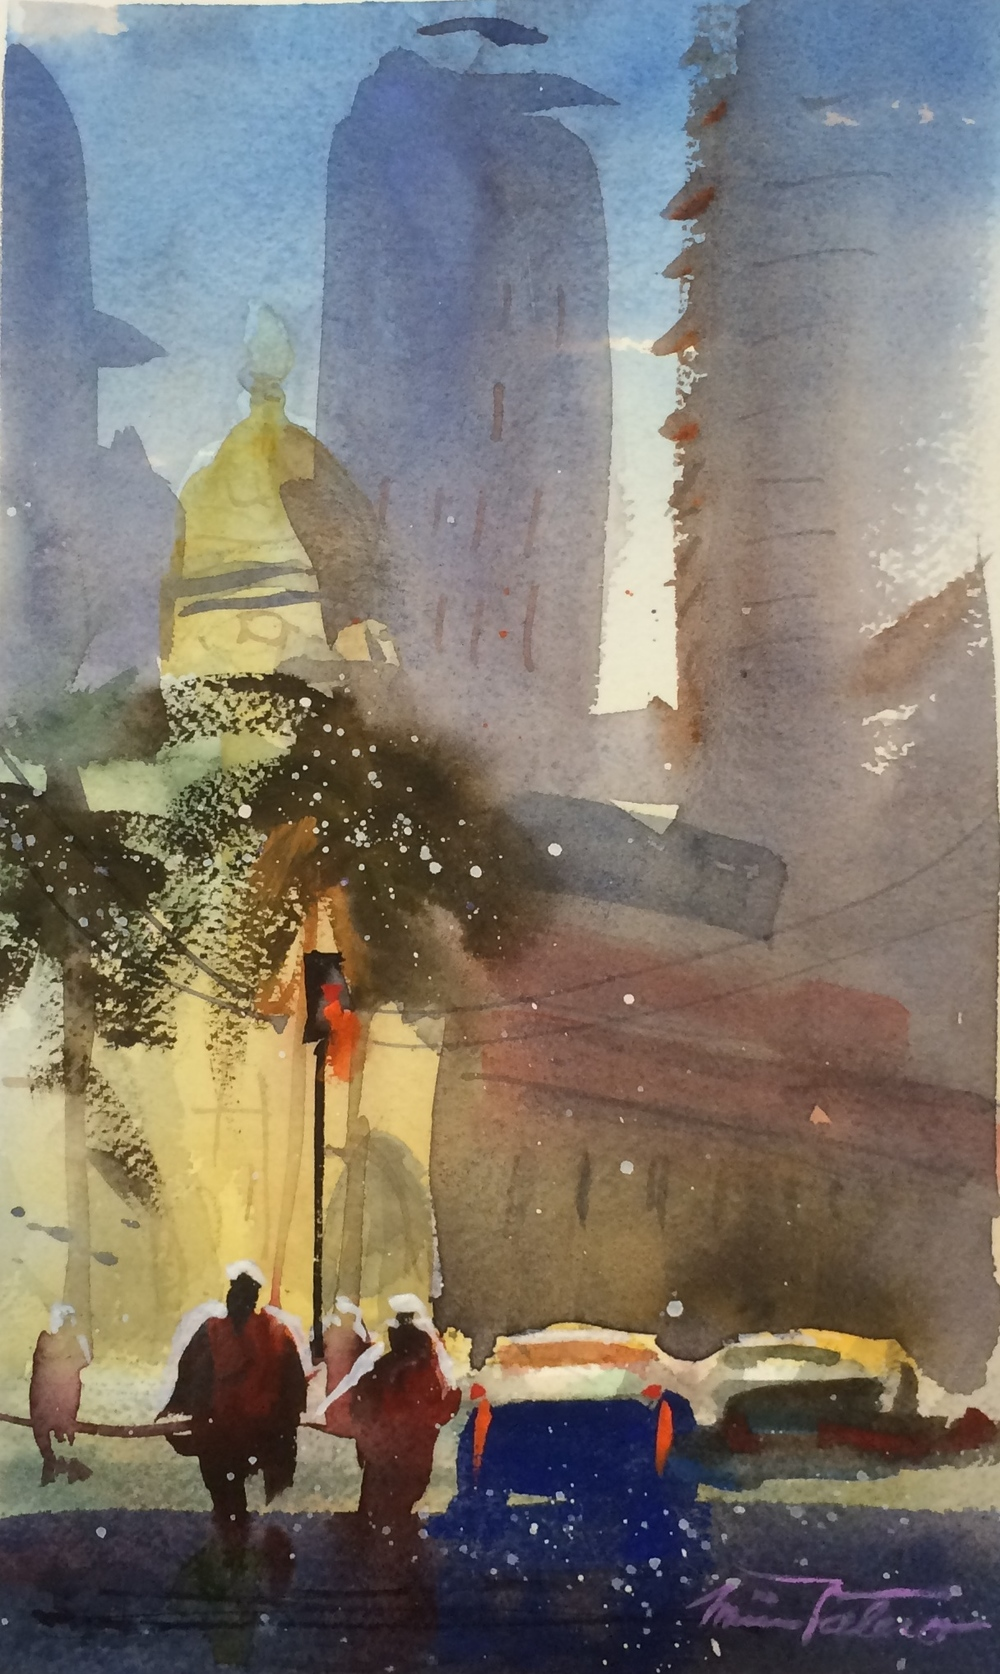 SAN DIEGO CENTER / watercolor on Arches paper / 11 x 6 in